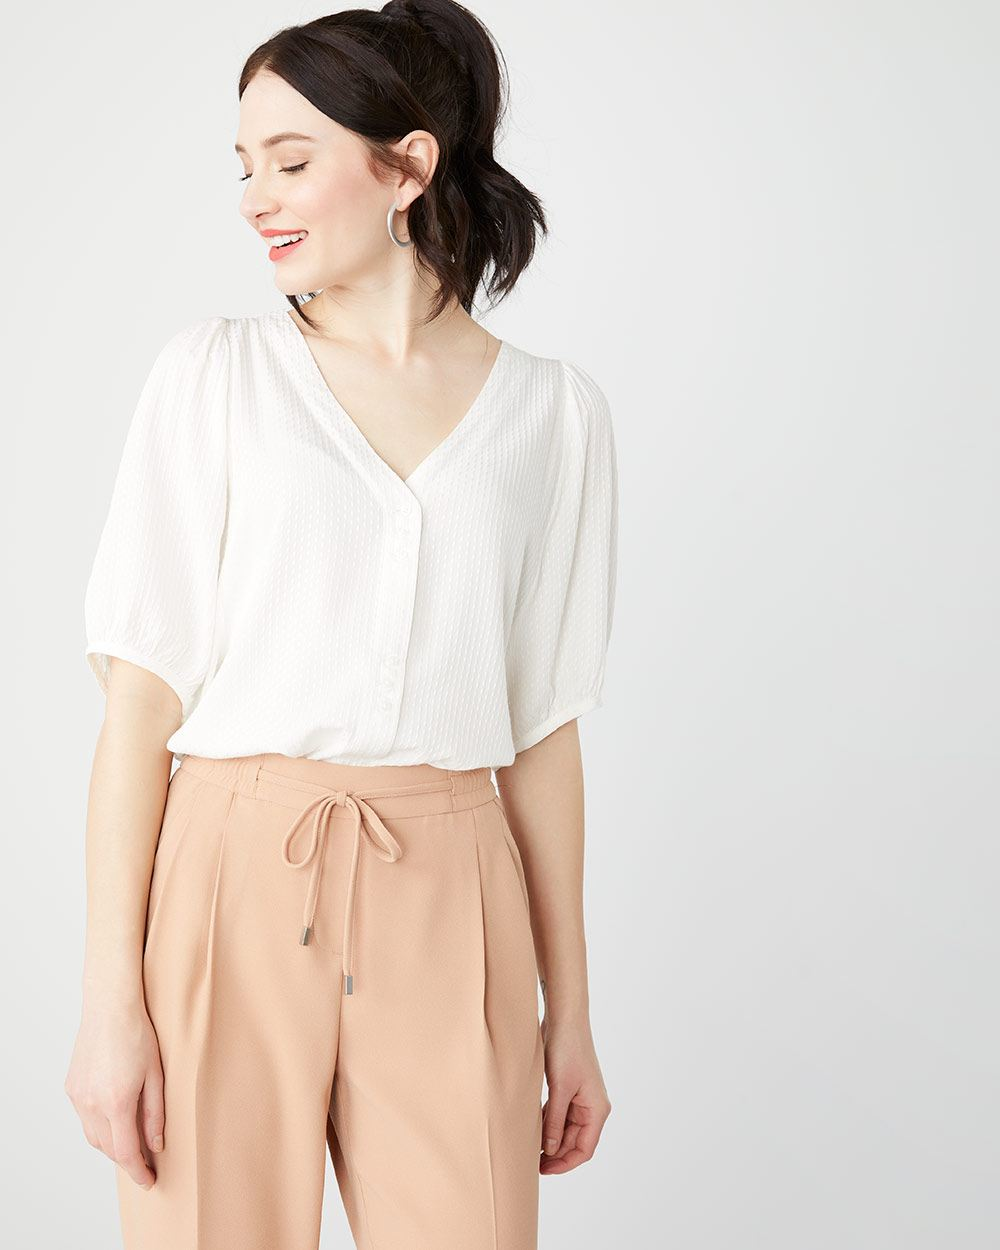 Textured button-down billowy sleeve blouse